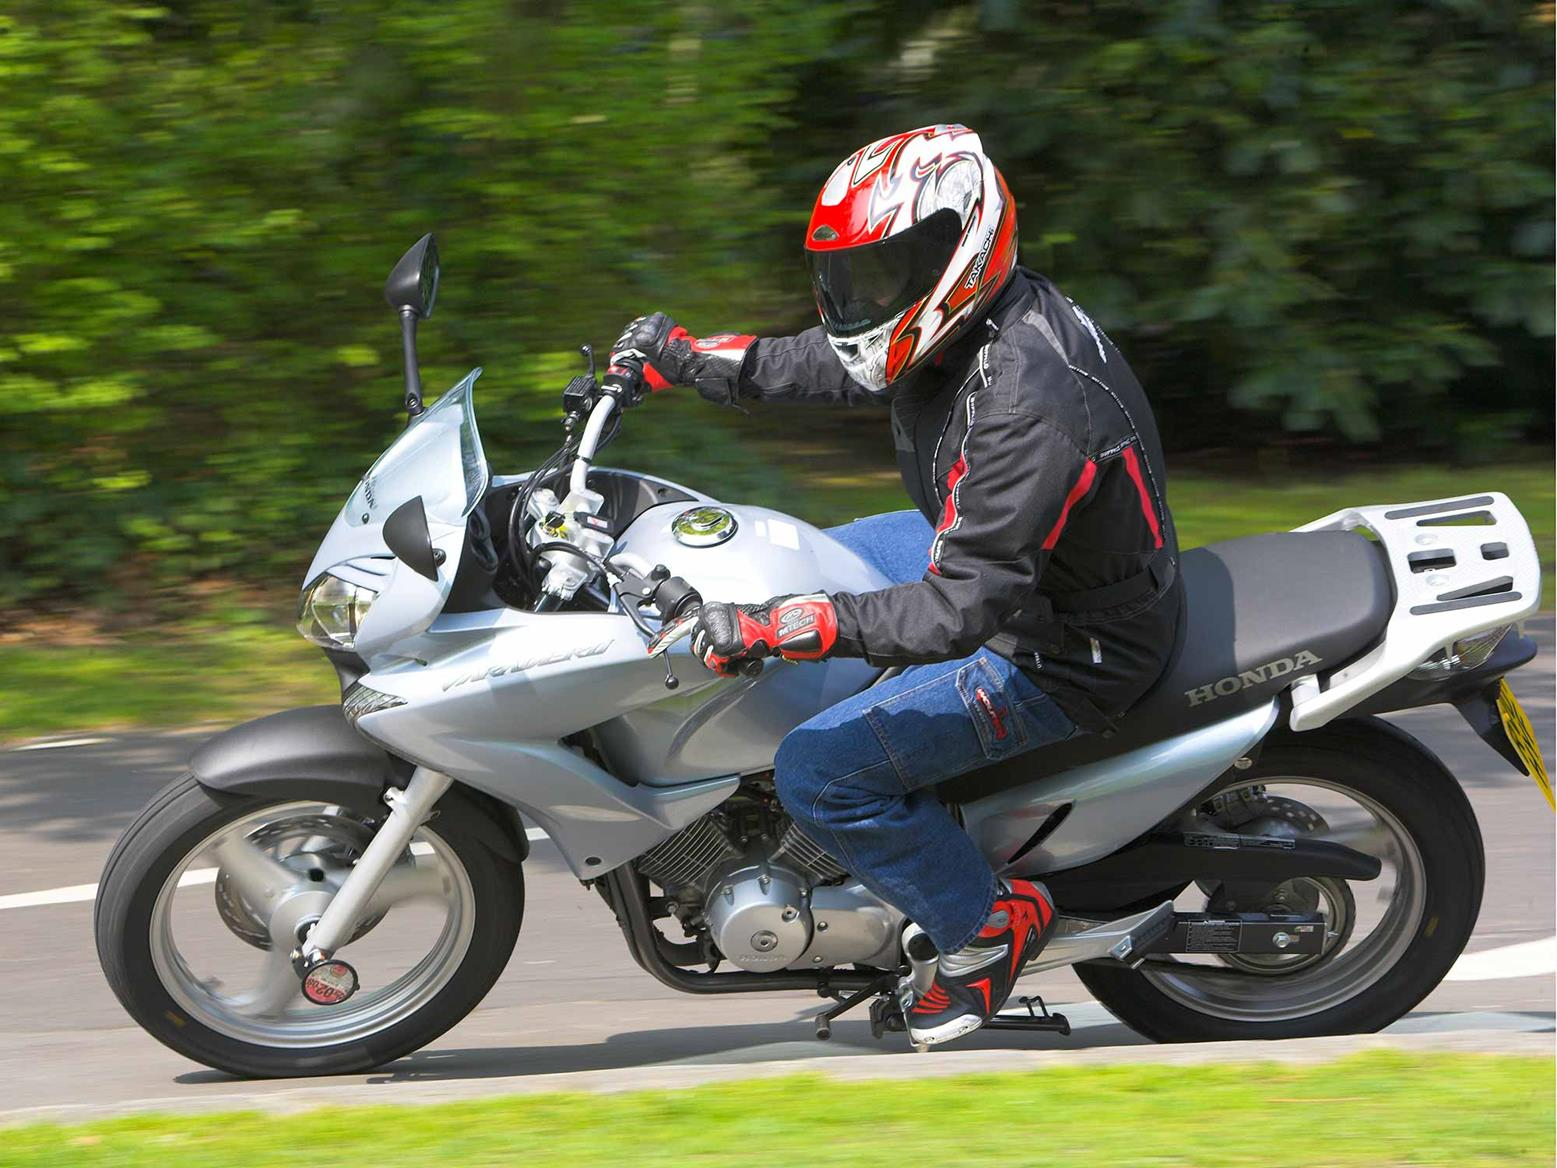 Cornering on the Honda Varadero 125